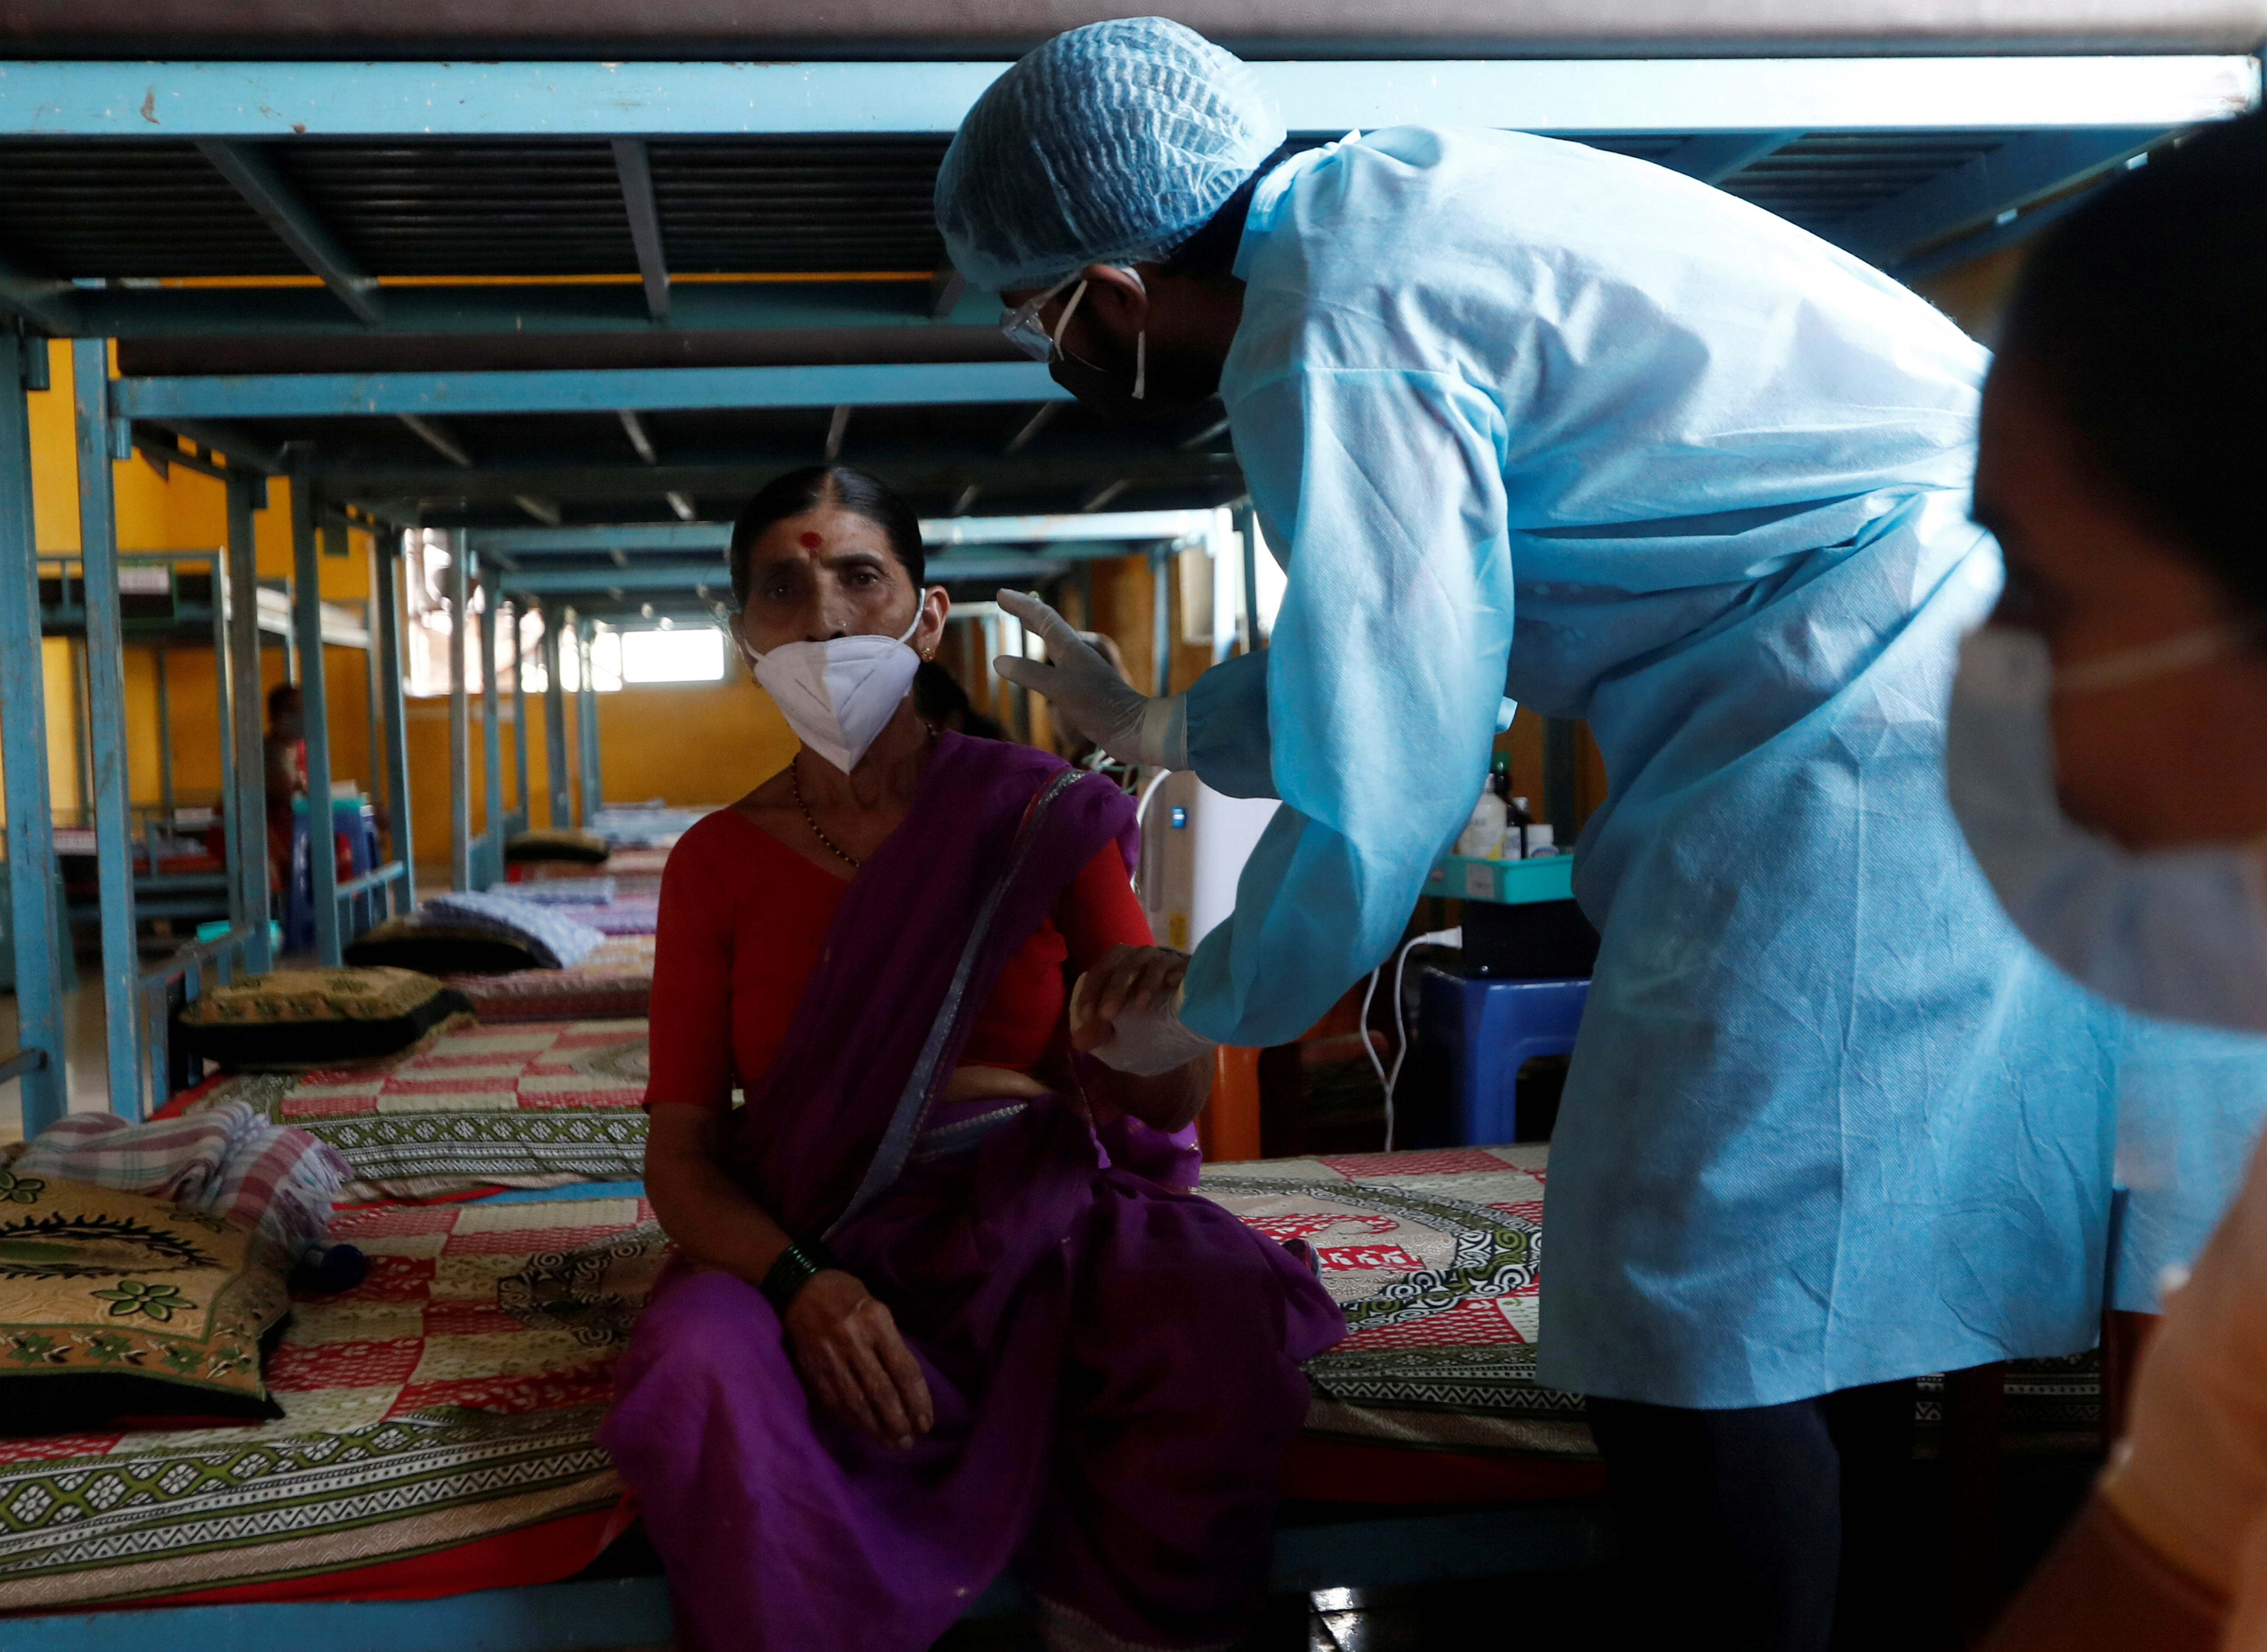 A doctor inspects a patient suffering from coronavirus disease (COVID-19) inside the classroom turned COVID-19 care facility on the outskirts of Mumbai, India, May 24, 2021. REUTERS/Francis Mascarenhas